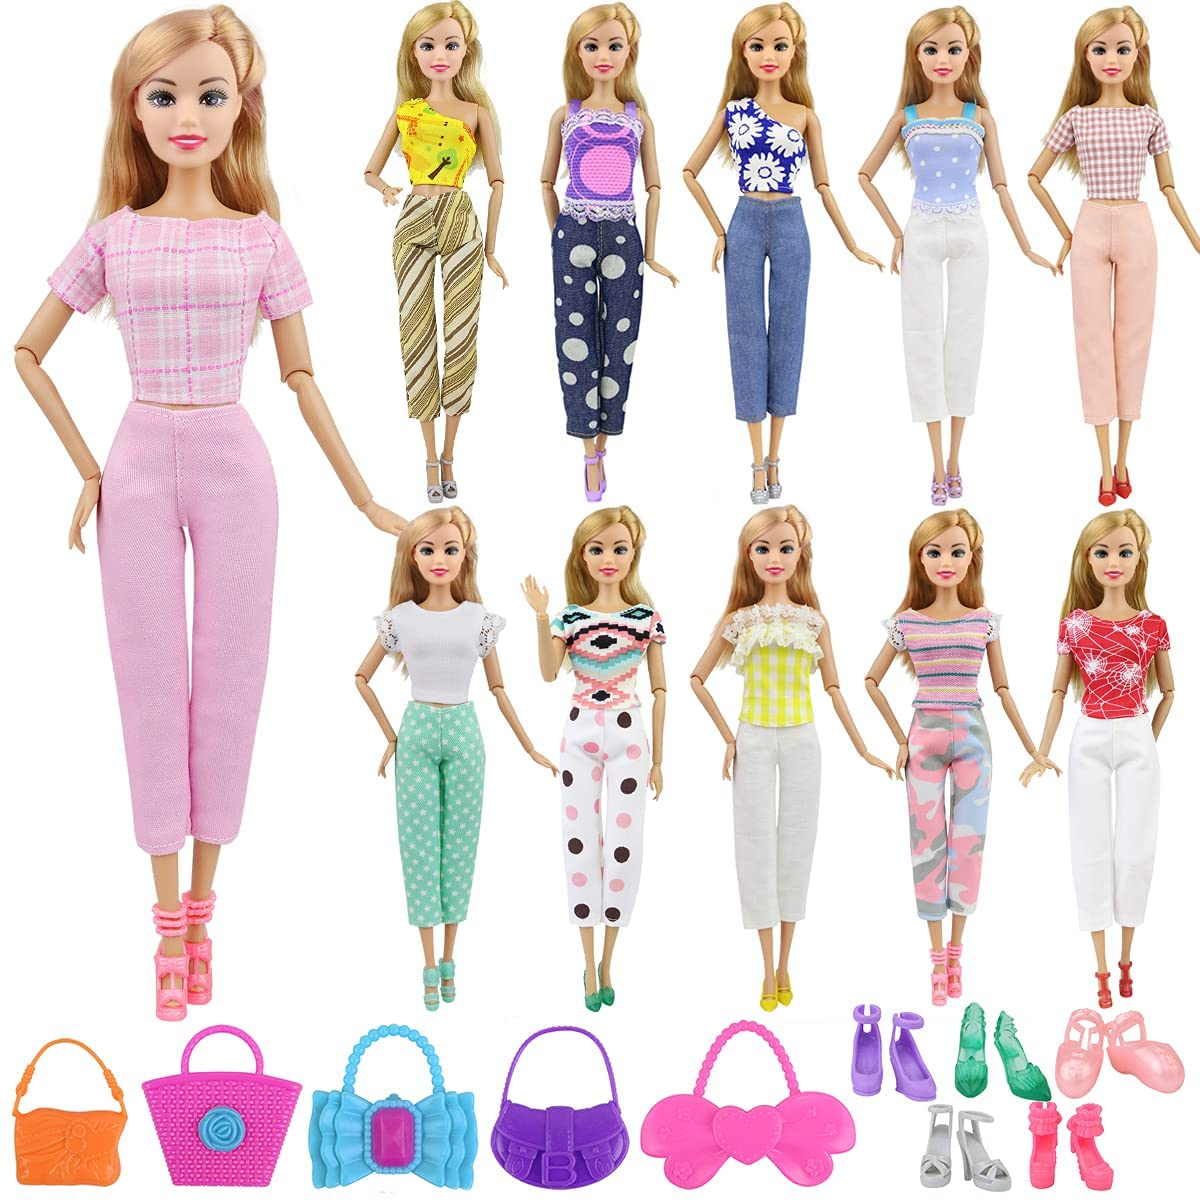 Cheap mail order specialty store Ecore Max 46% OFF Fun Lot 15 Items Girl Accessor Doll Outfits Clothes Casual